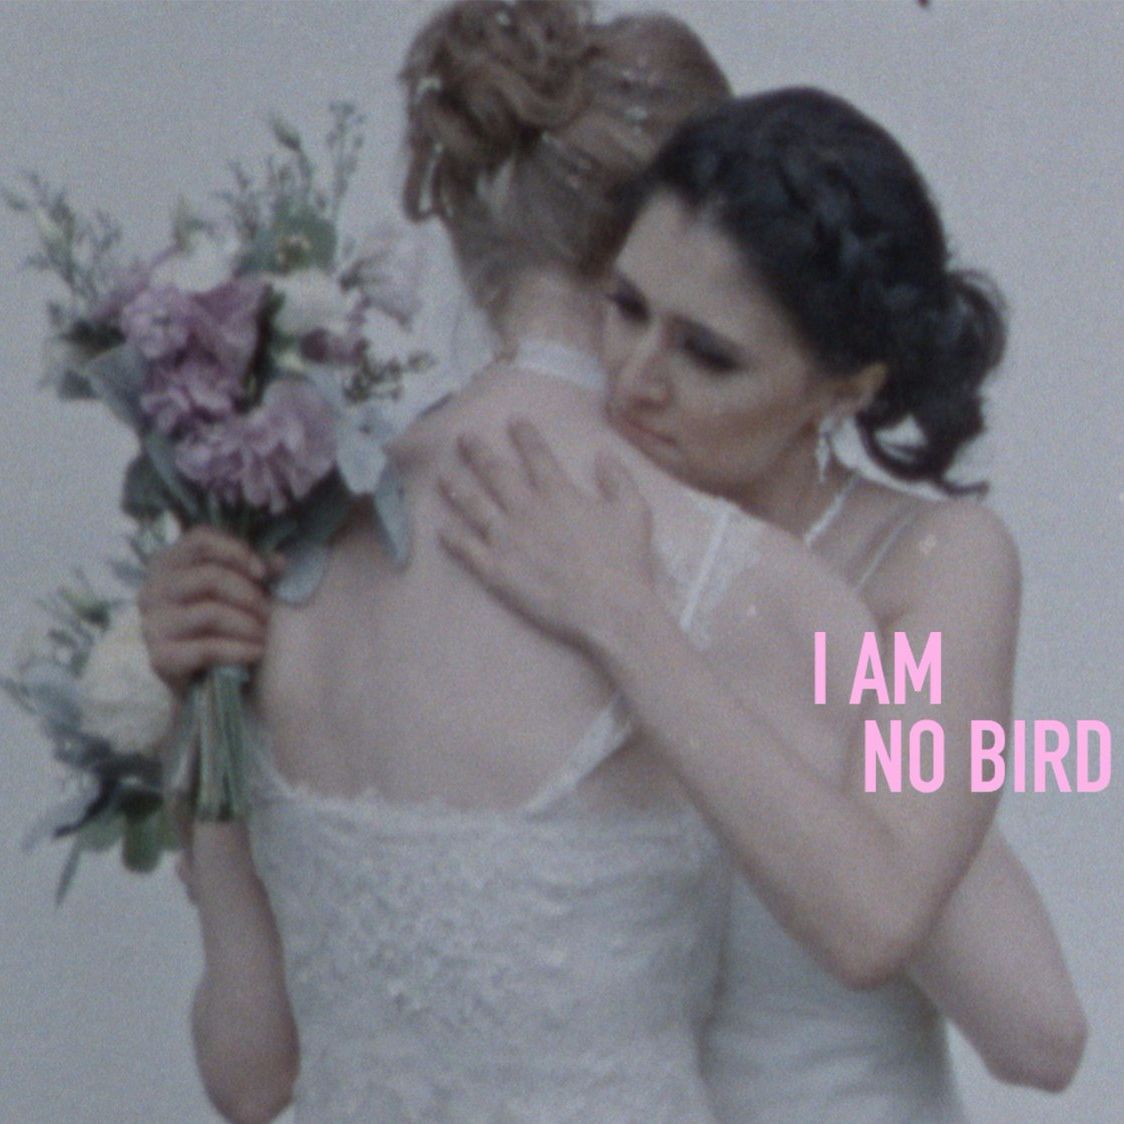 I AM NO BIRD